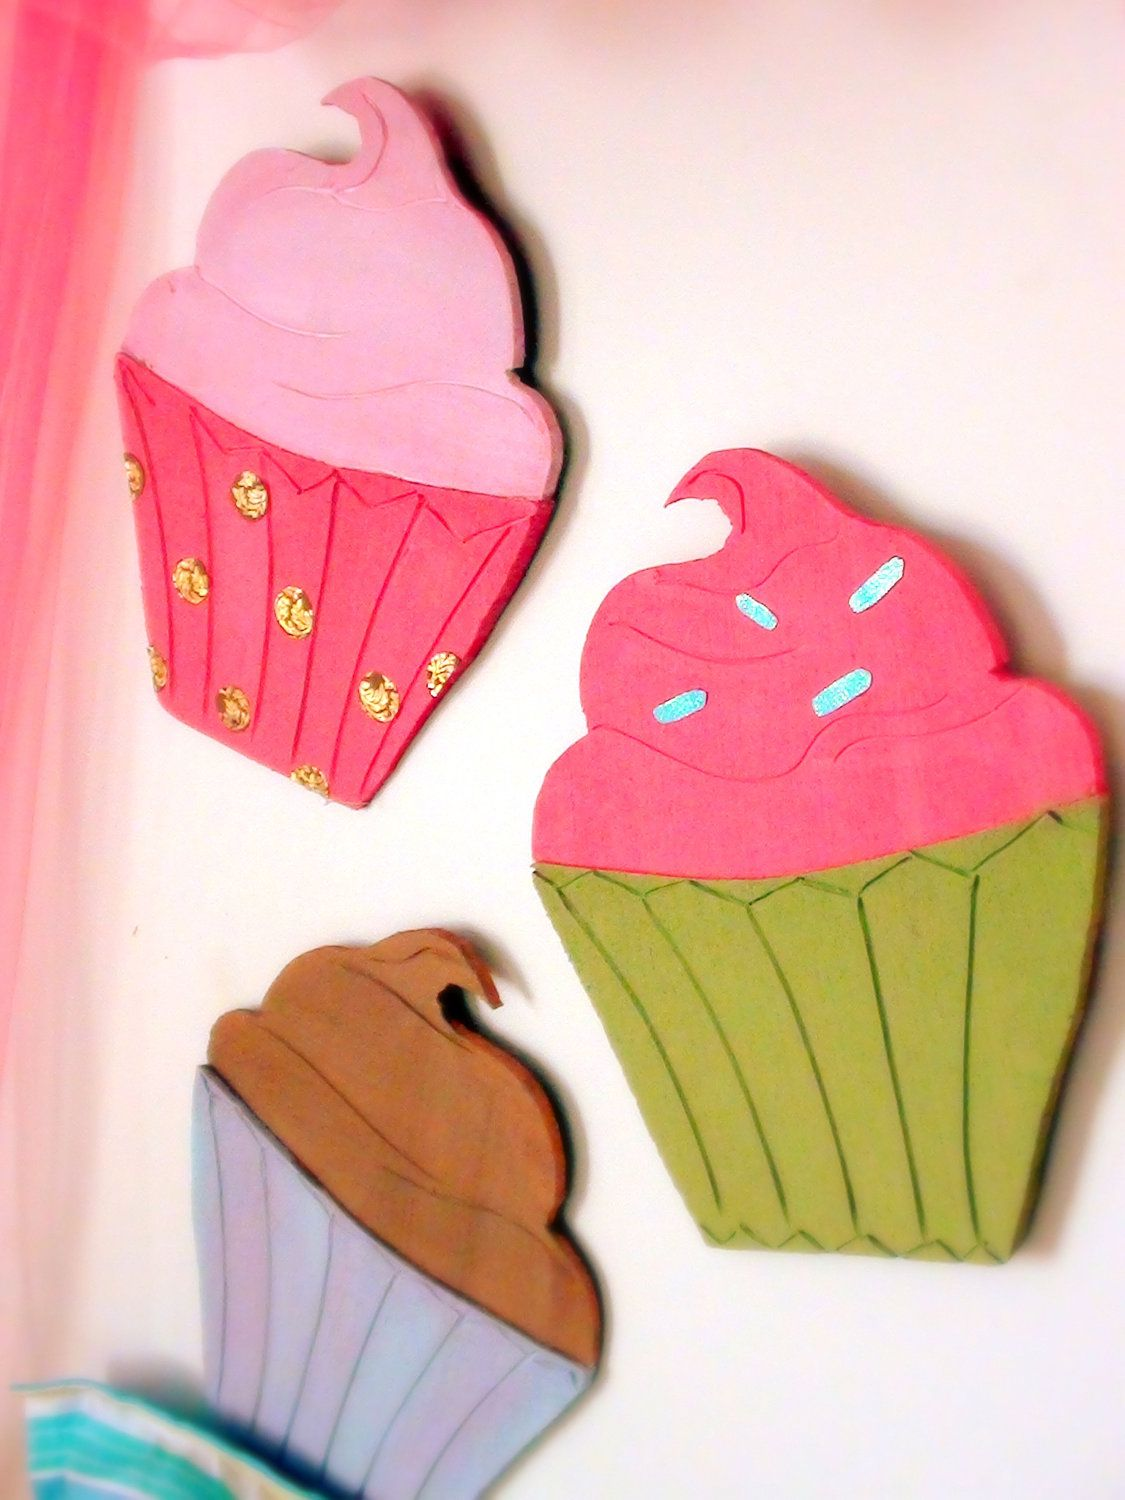 Set Of 3 Large Cupcakes Wall Art By Meandmyroom On Etsy 20 00